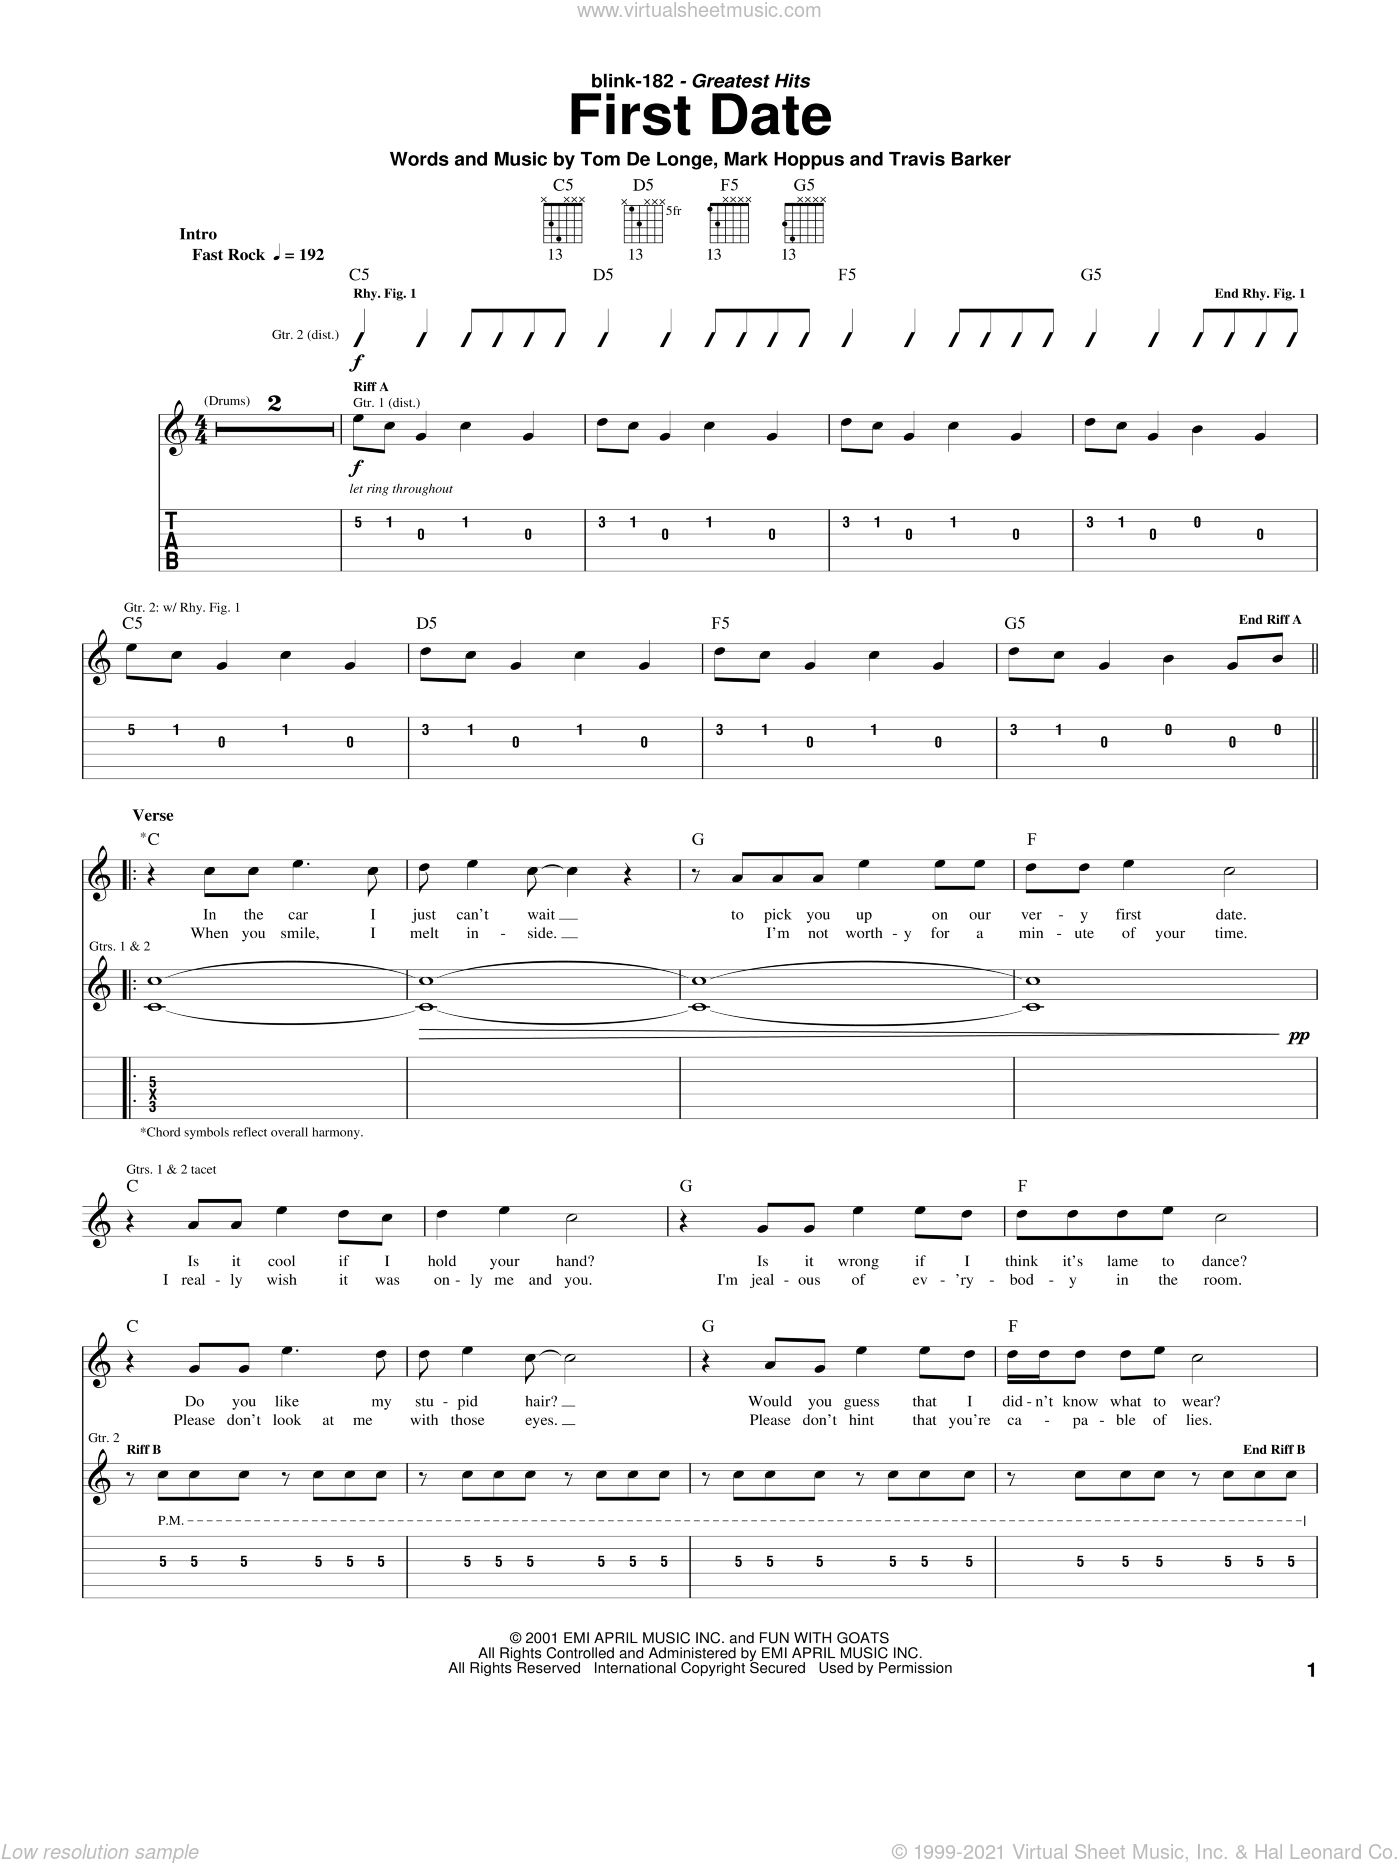 First Date sheet music for guitar (tablature) by Blink-182, Mark Hoppus, Tom DeLonge and Travis Barker, intermediate. Score Image Preview.